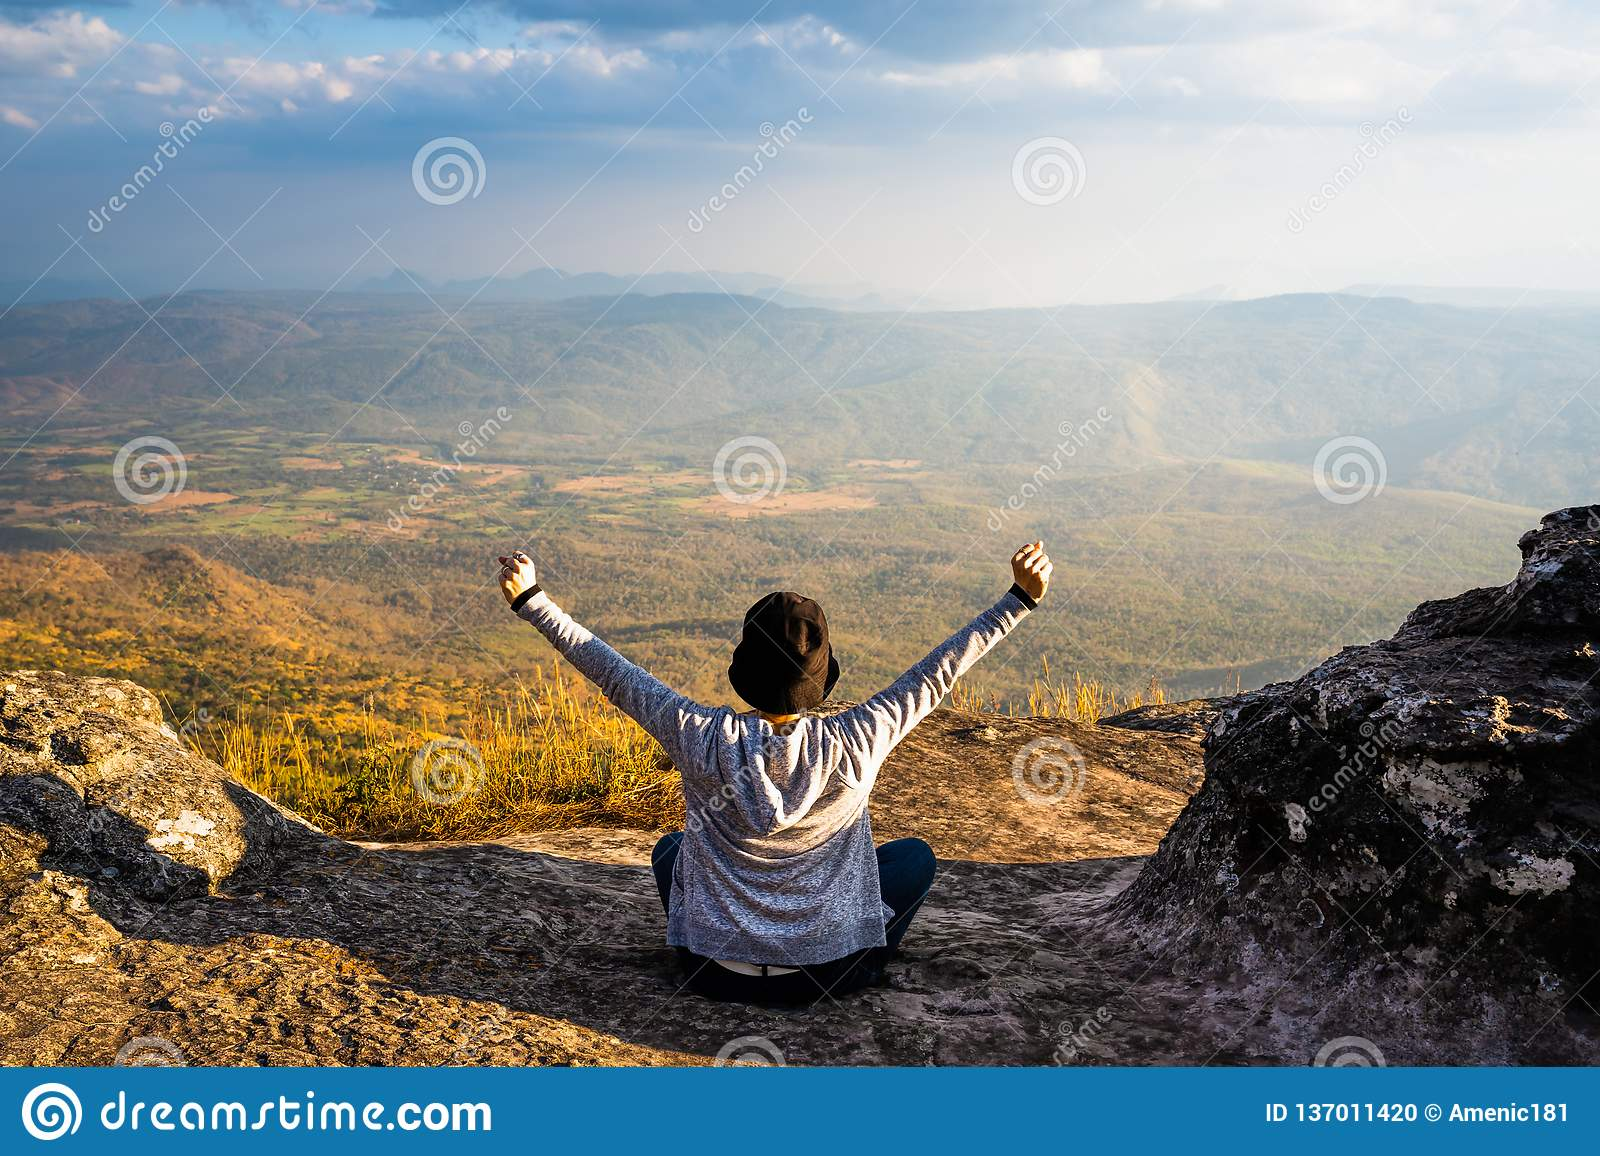 A woman sitting down with hands up on rocky mountain looking out at scenic natural view and beautiful blue sky